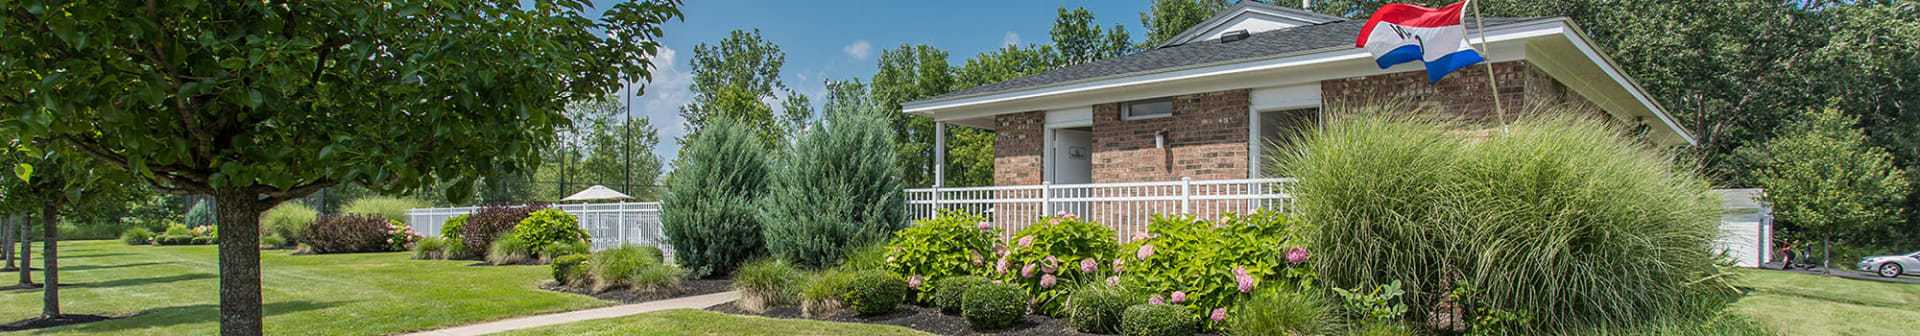 Great amenities at Willowbrooke Apartments and Townhomes